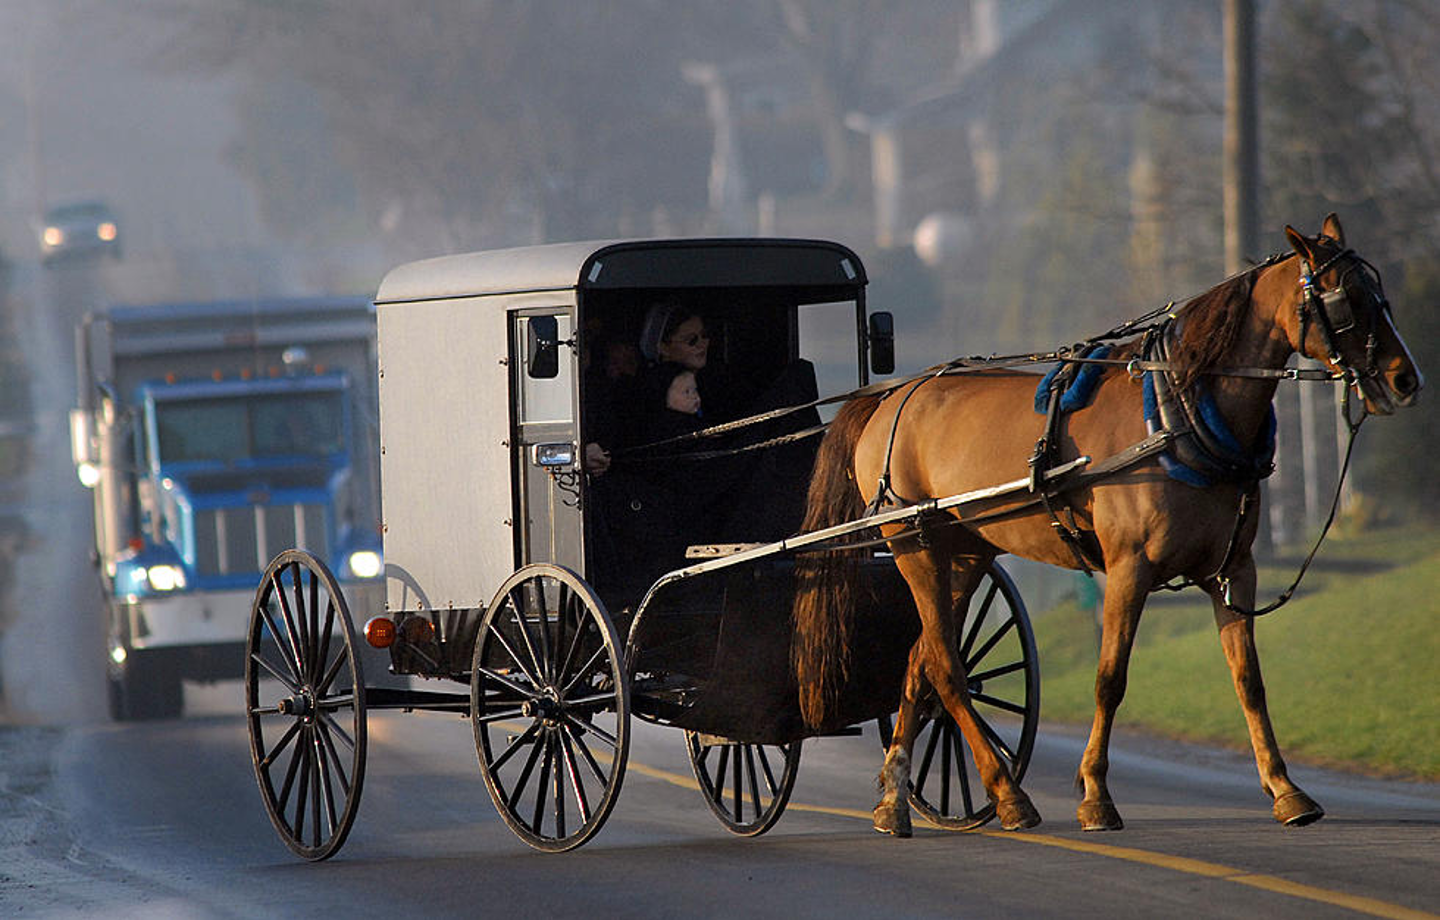 Amish buggy going down road, followed by a big 18wheeler truck